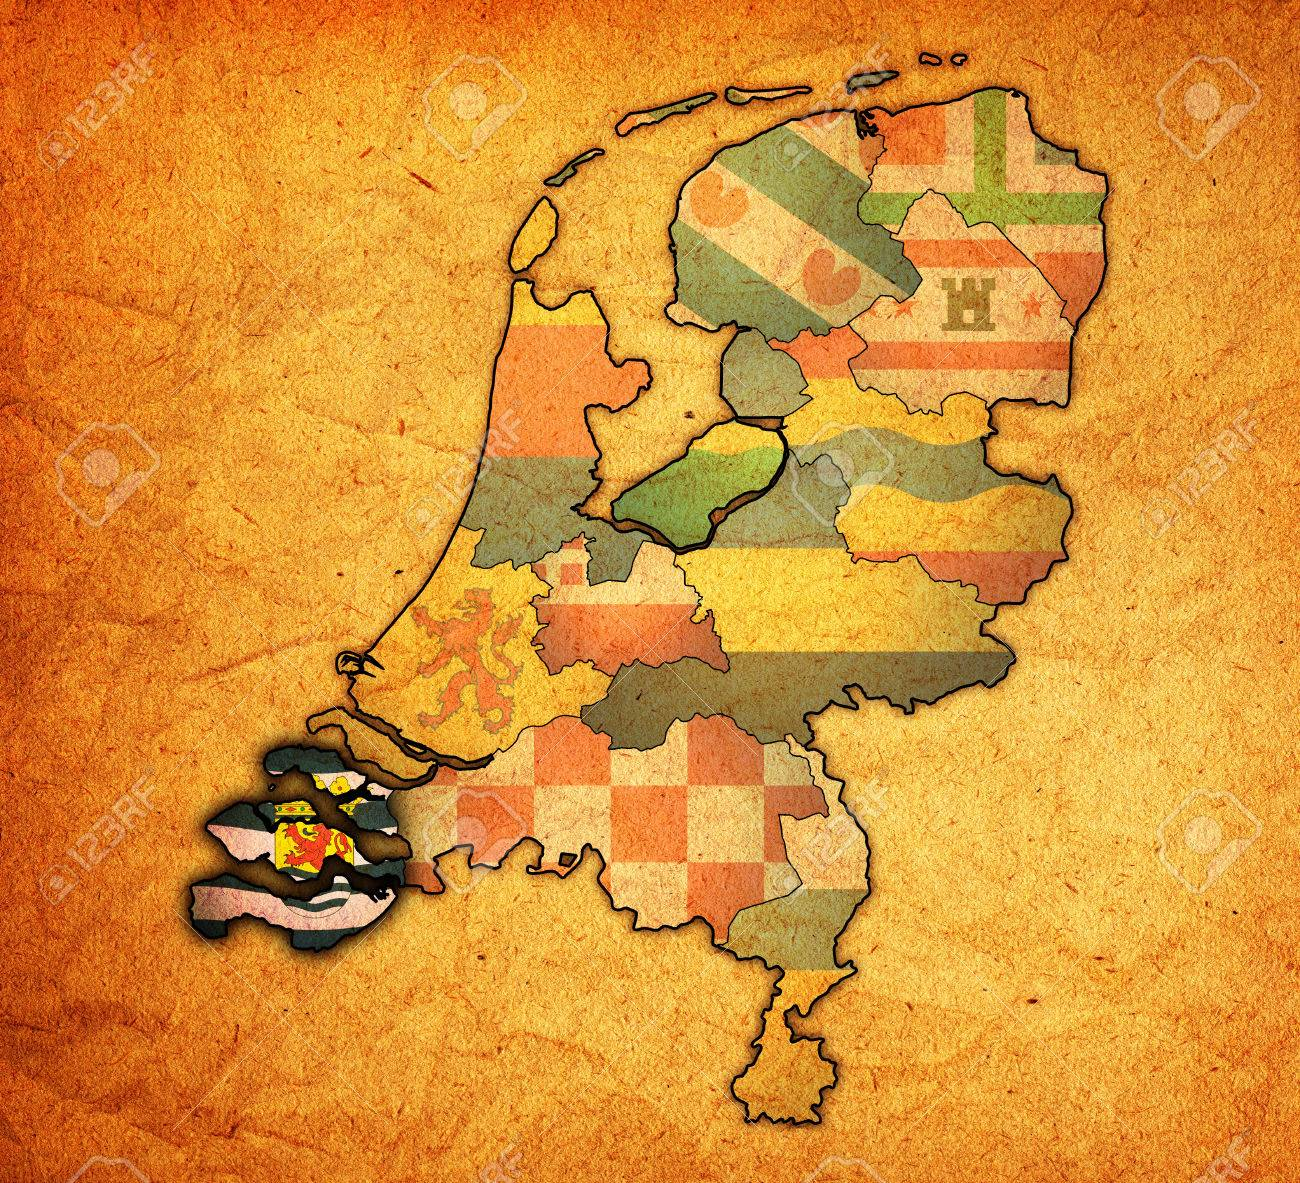 Zeeland Flag On Map With Borders Of Provinces In Netherlands Stock